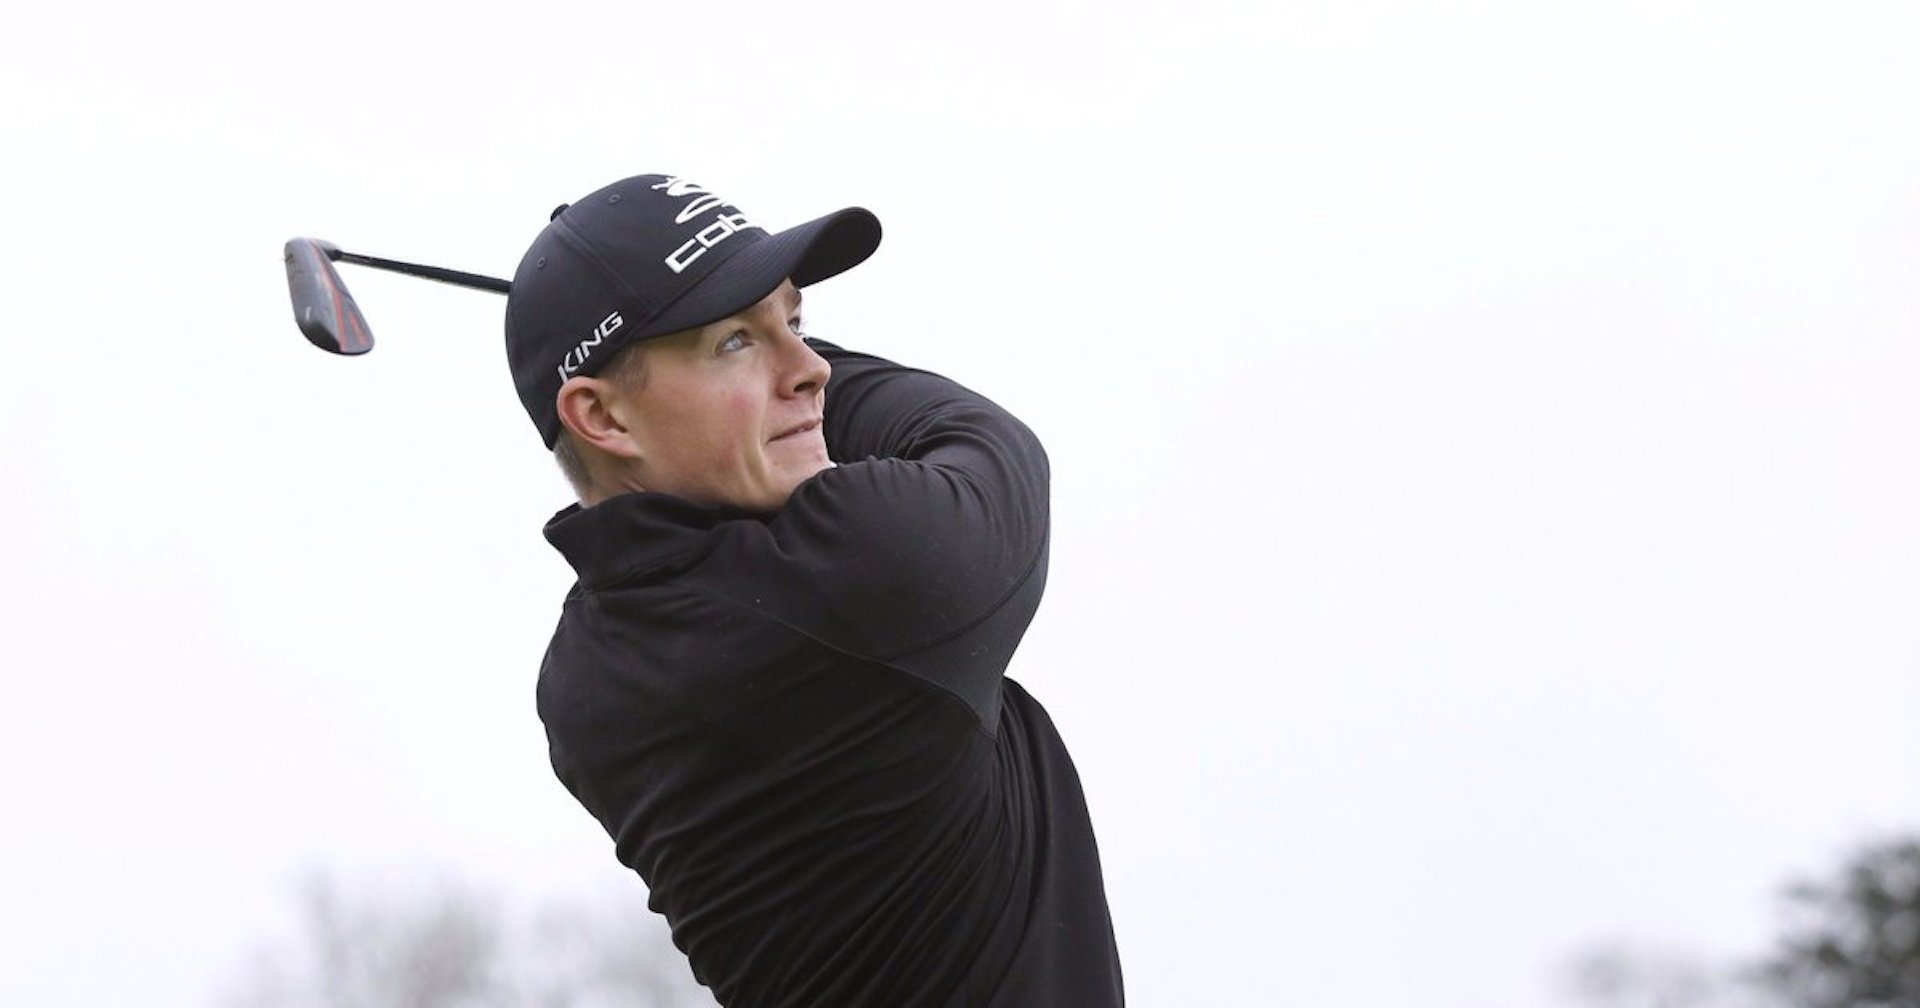 Scott Gregory signs with Cobra Puma Golf